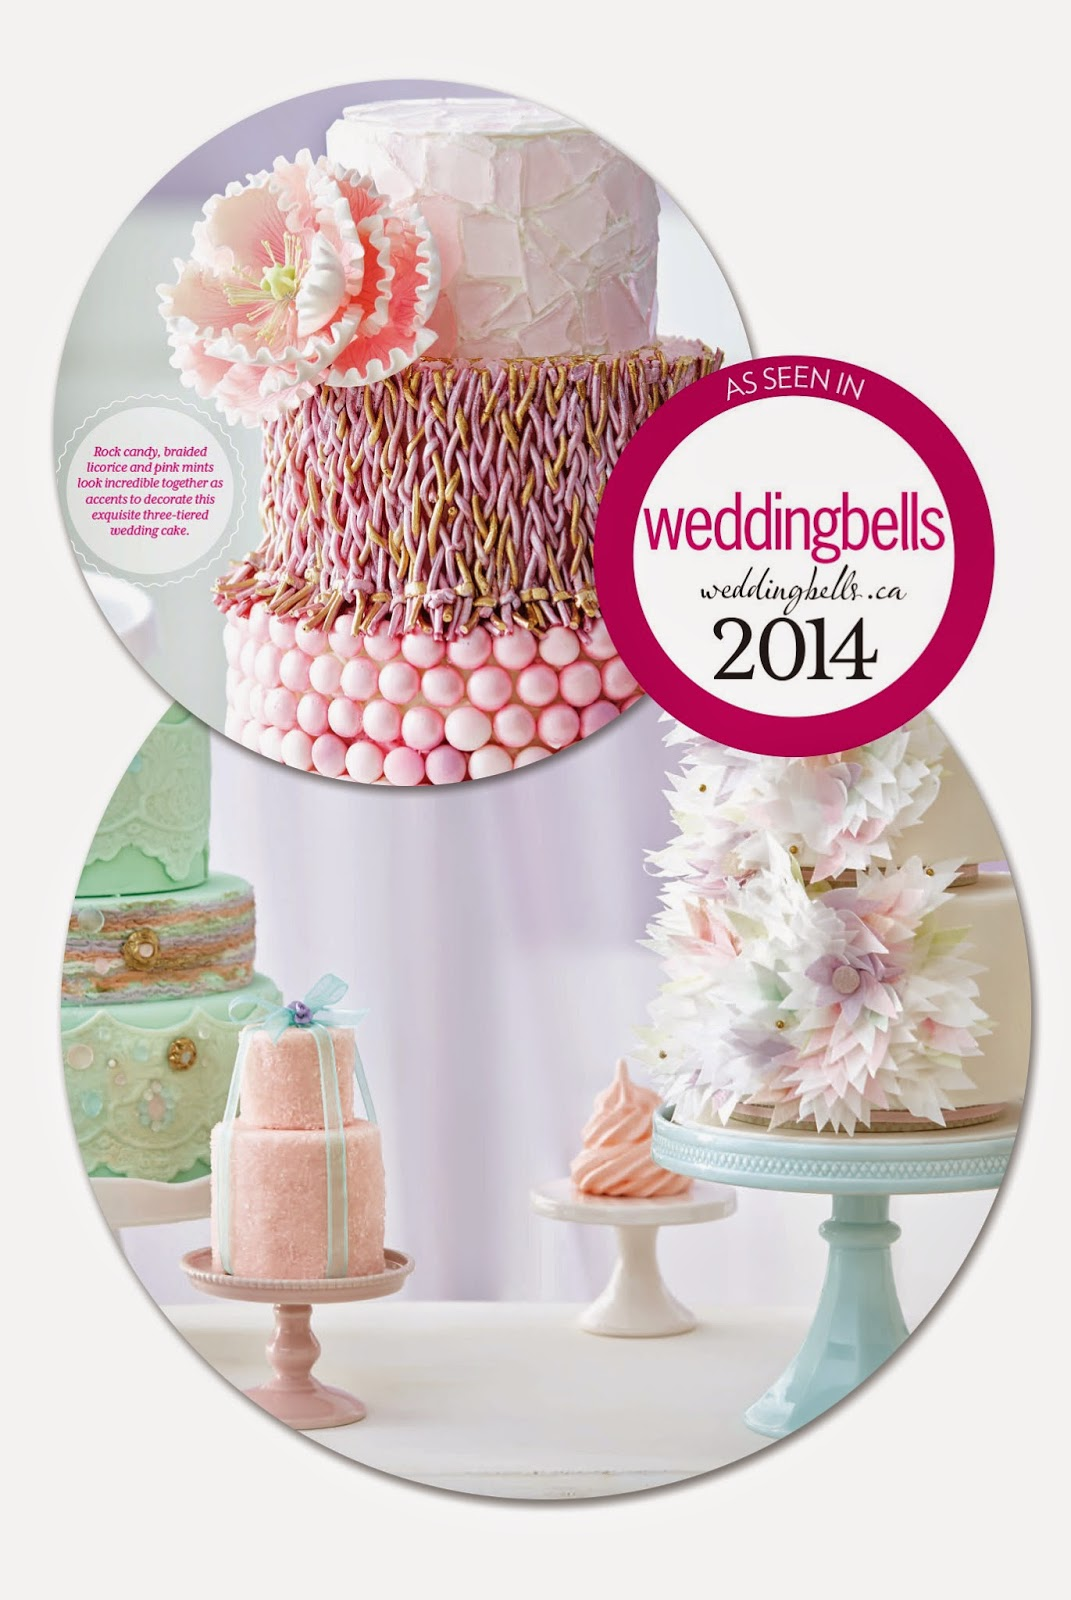 sweet table inspiration as seen in Weddingbells magazine